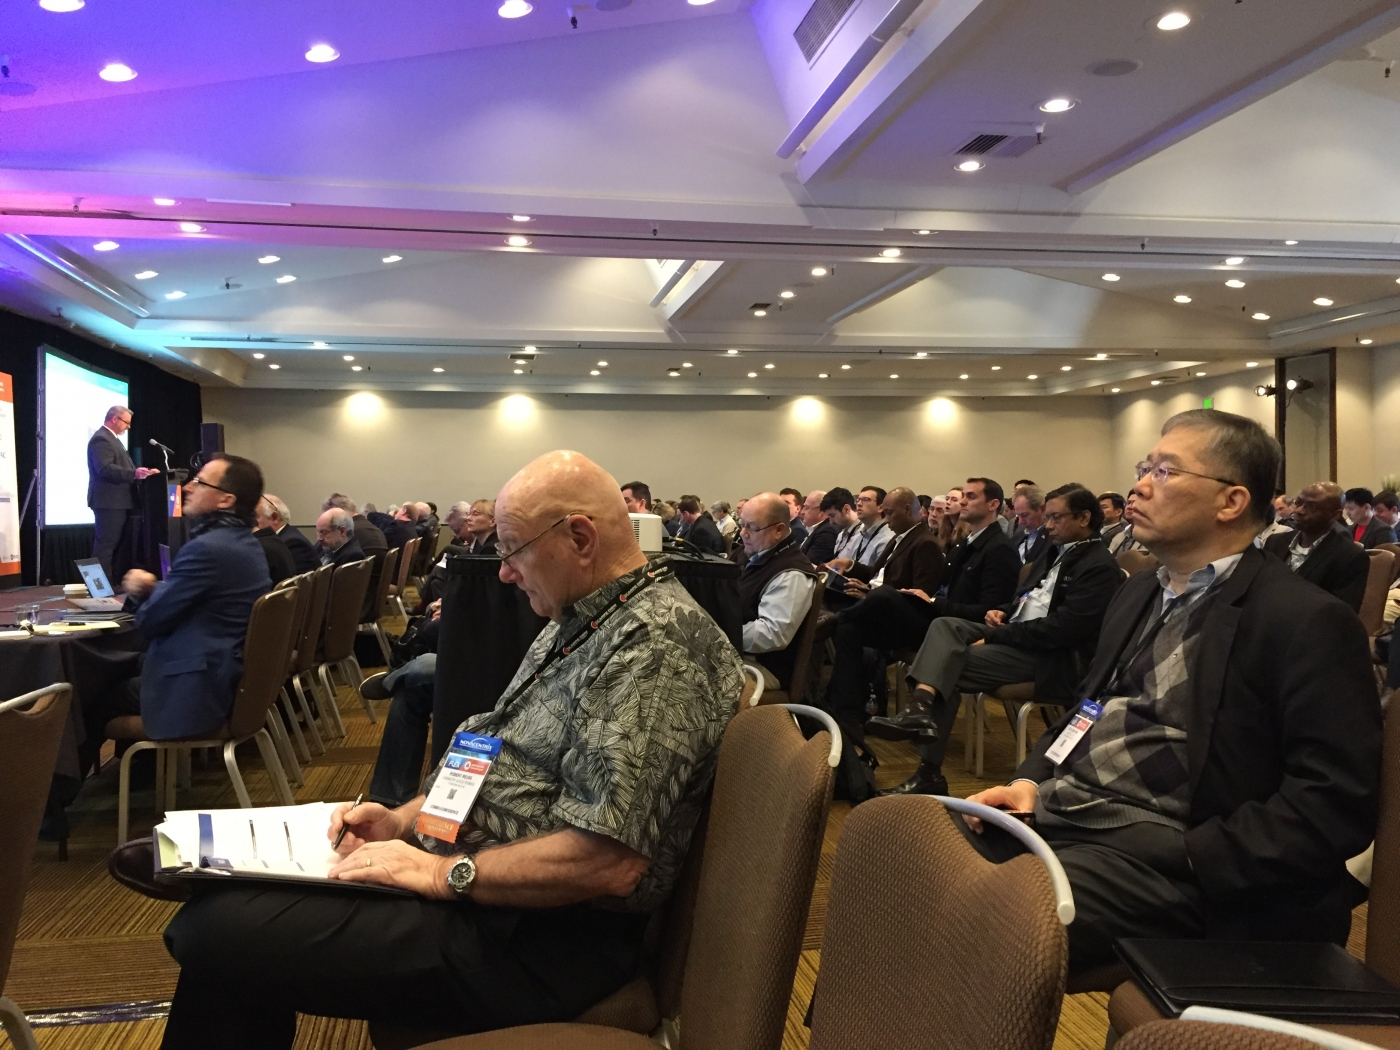 Attendees learn about new developments in flexible hybrid electronics.